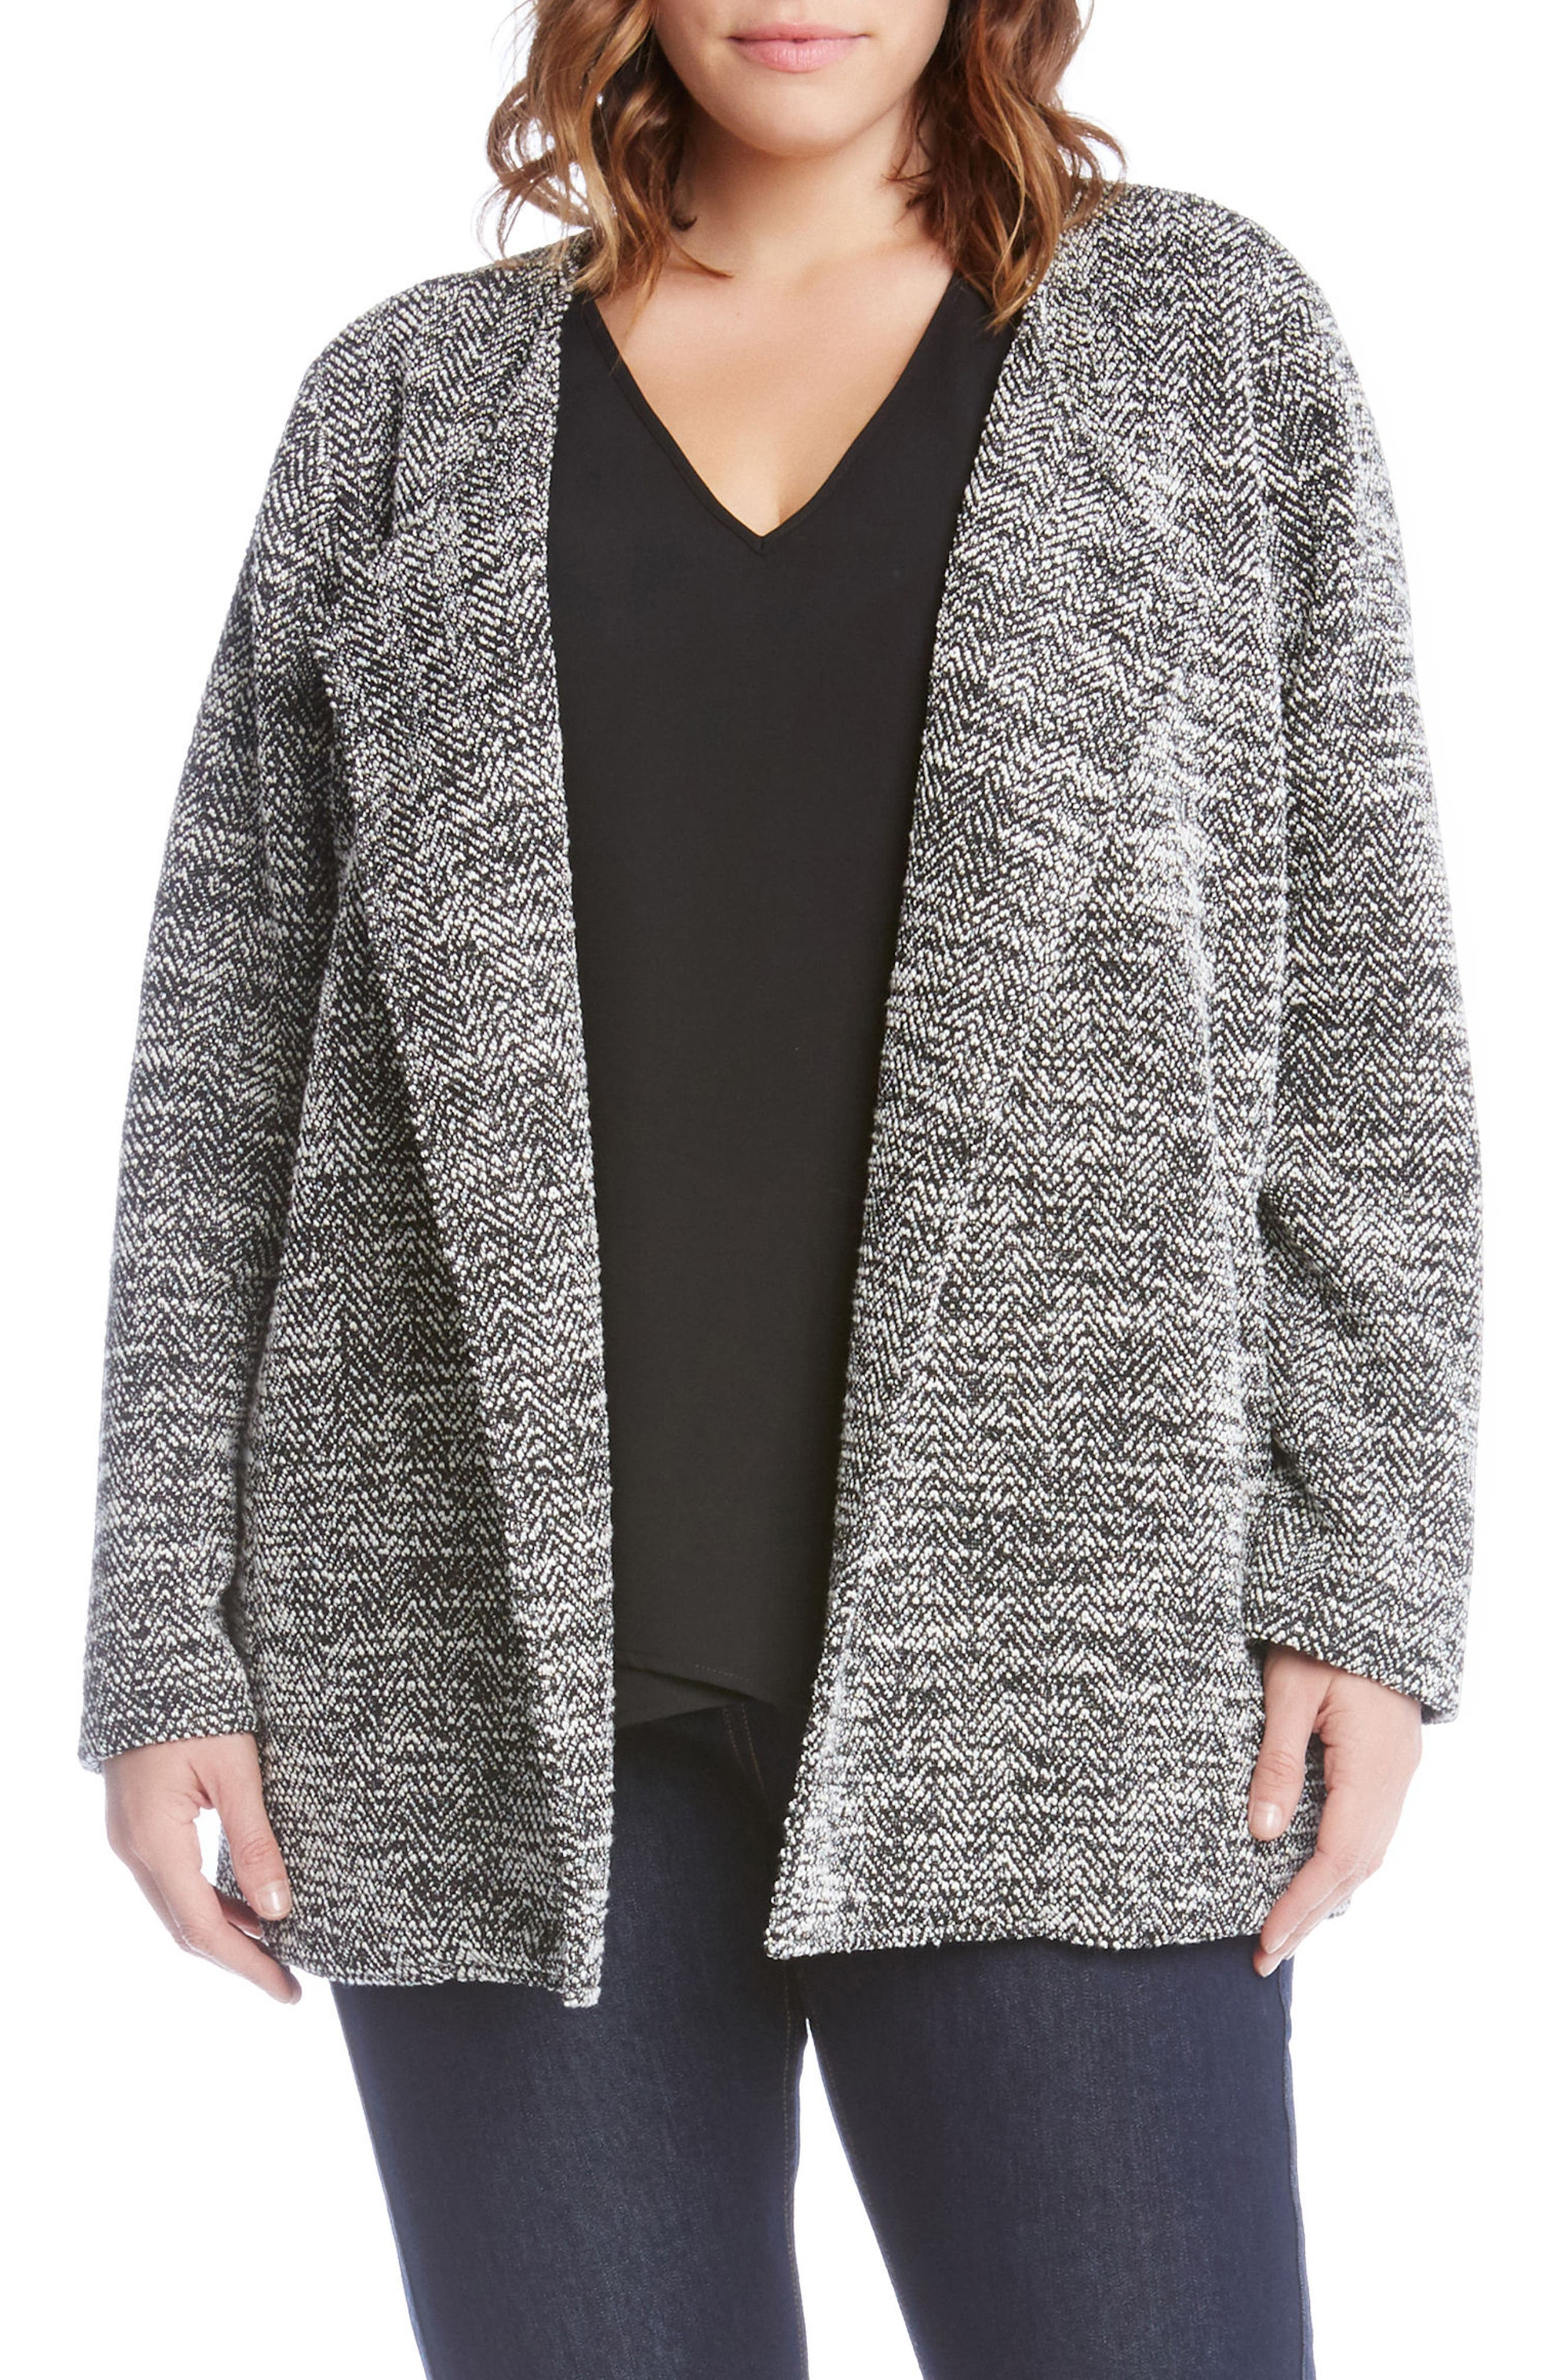 Lightweight Tweed Knit Jacket,                             Main thumbnail 1, color,                             Black